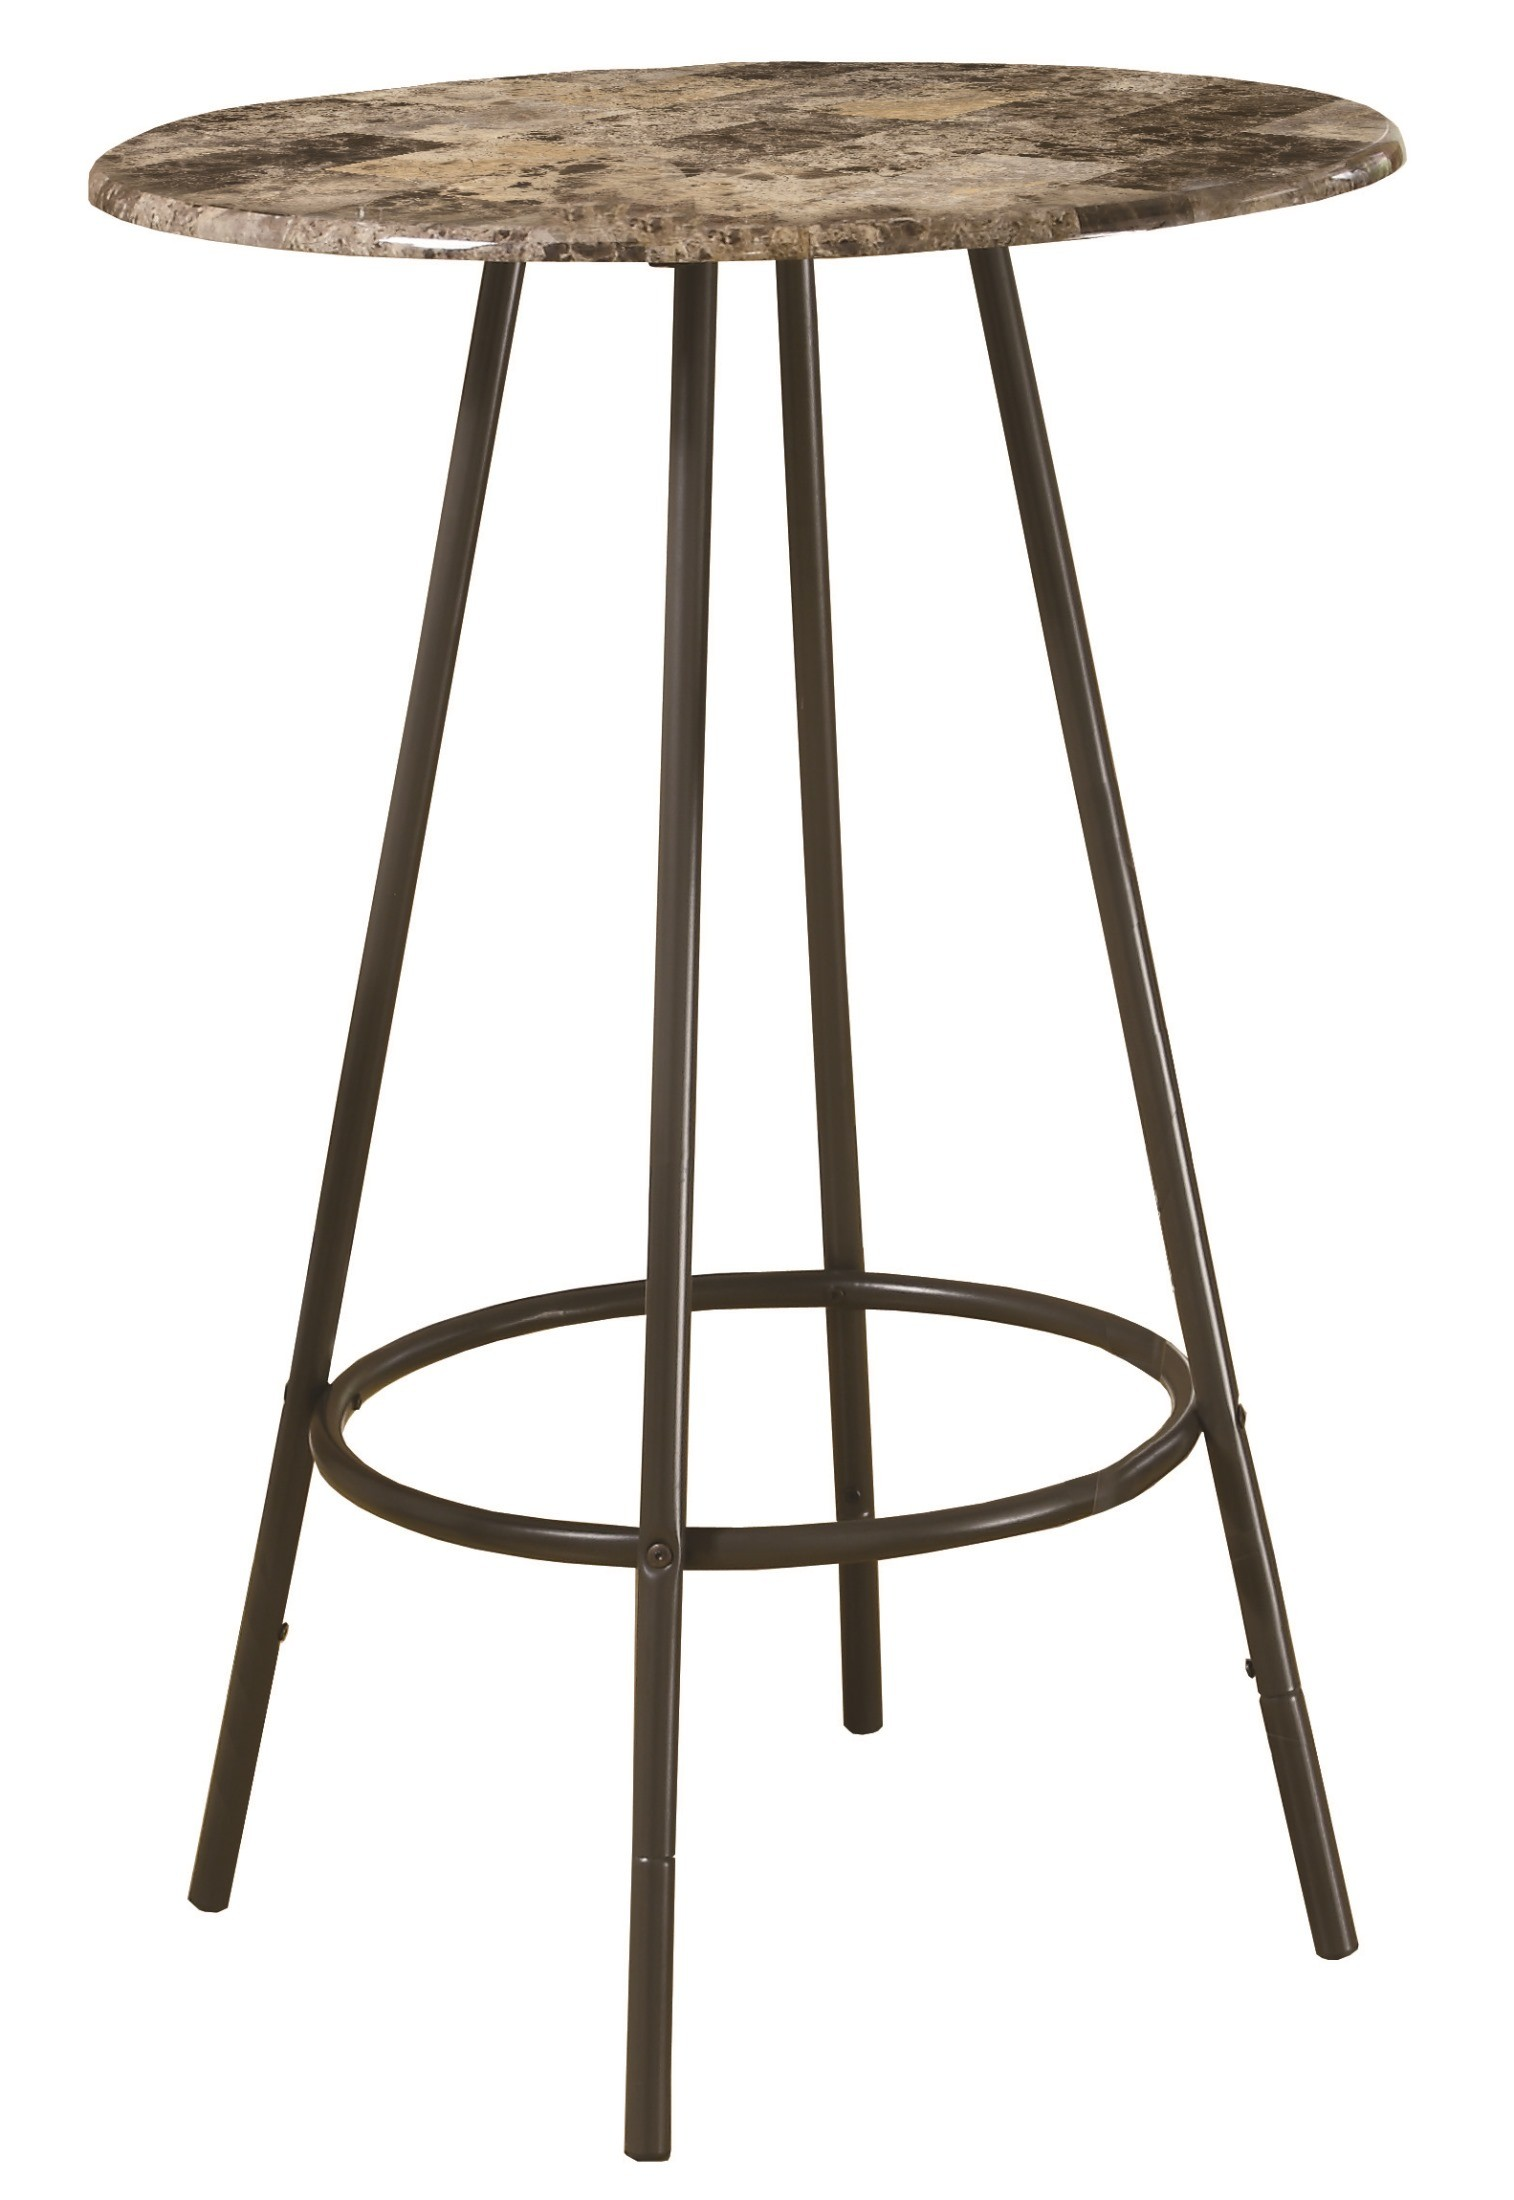 2310 Cappuccino Marble Coffee Metal Bar Table From Monarch I 2310 Coleman Furniture